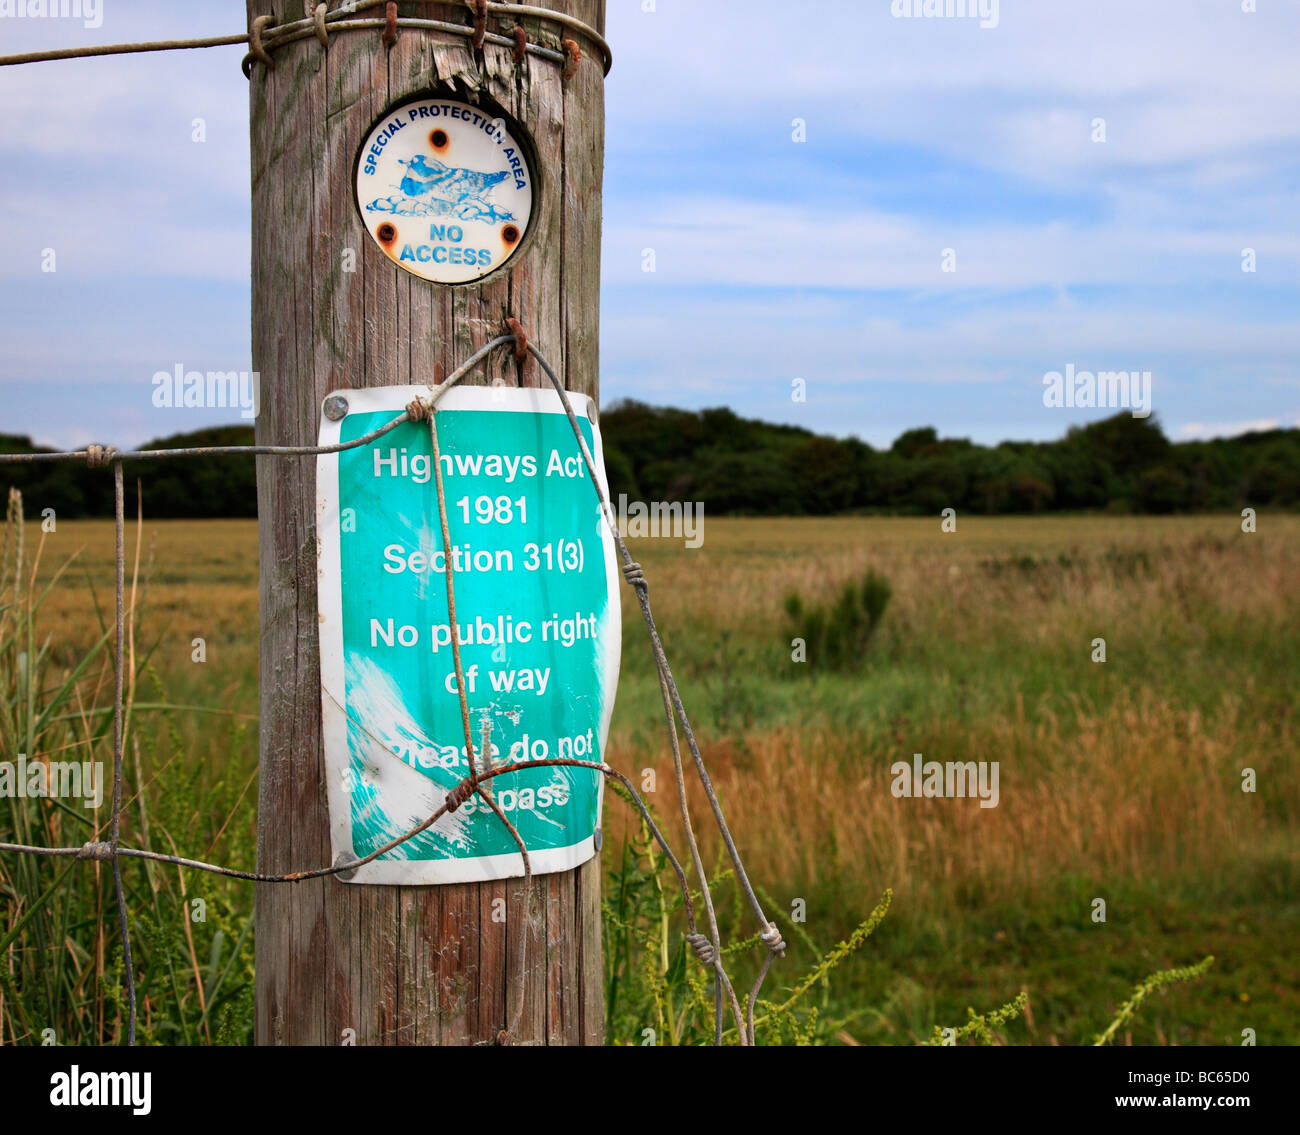 Special Protection Area and trespass notice. Climping, Near Littlehampton, West Sussex, England, UK. - Stock Image